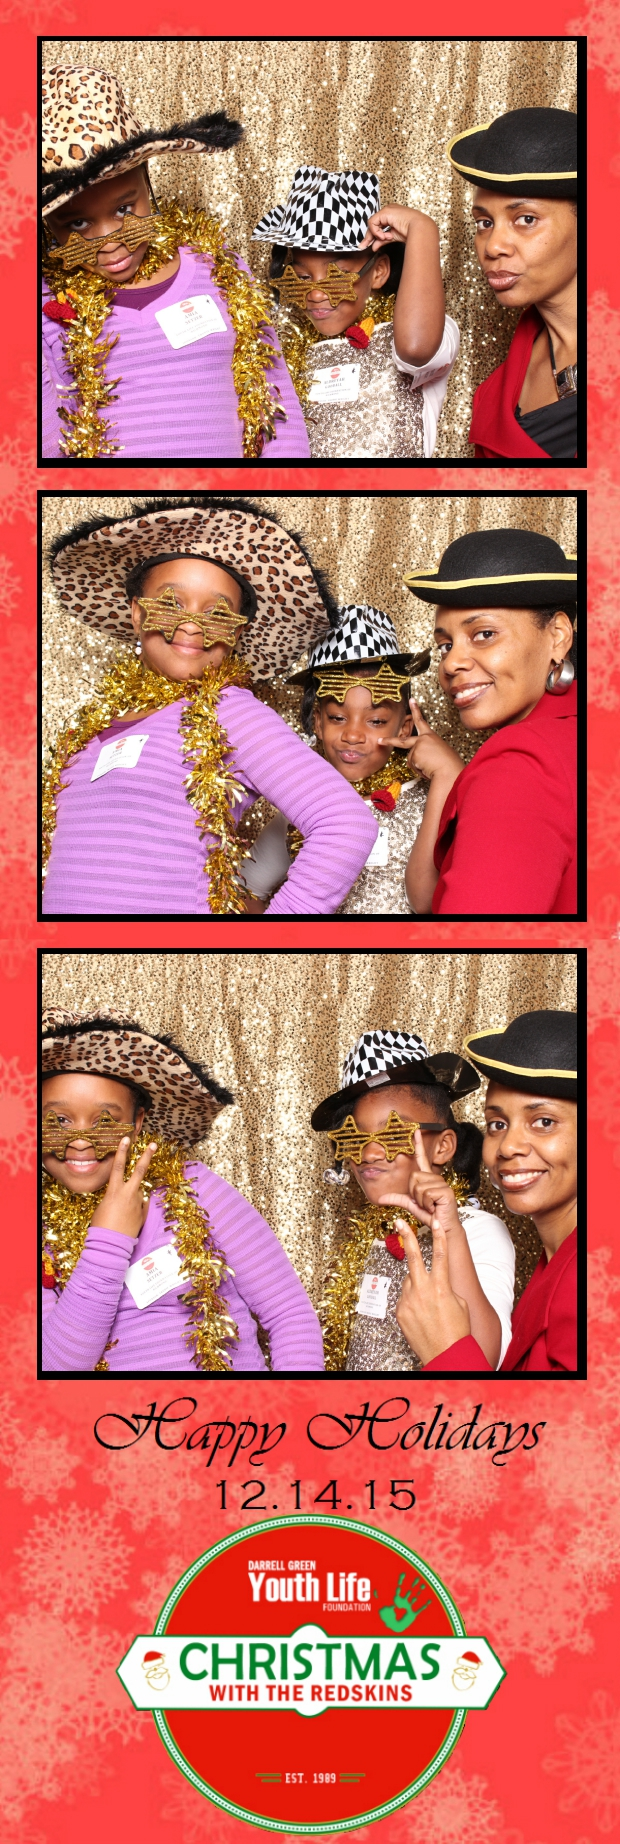 Guest House Events Photo Booth DGYLF Strips (24).jpg